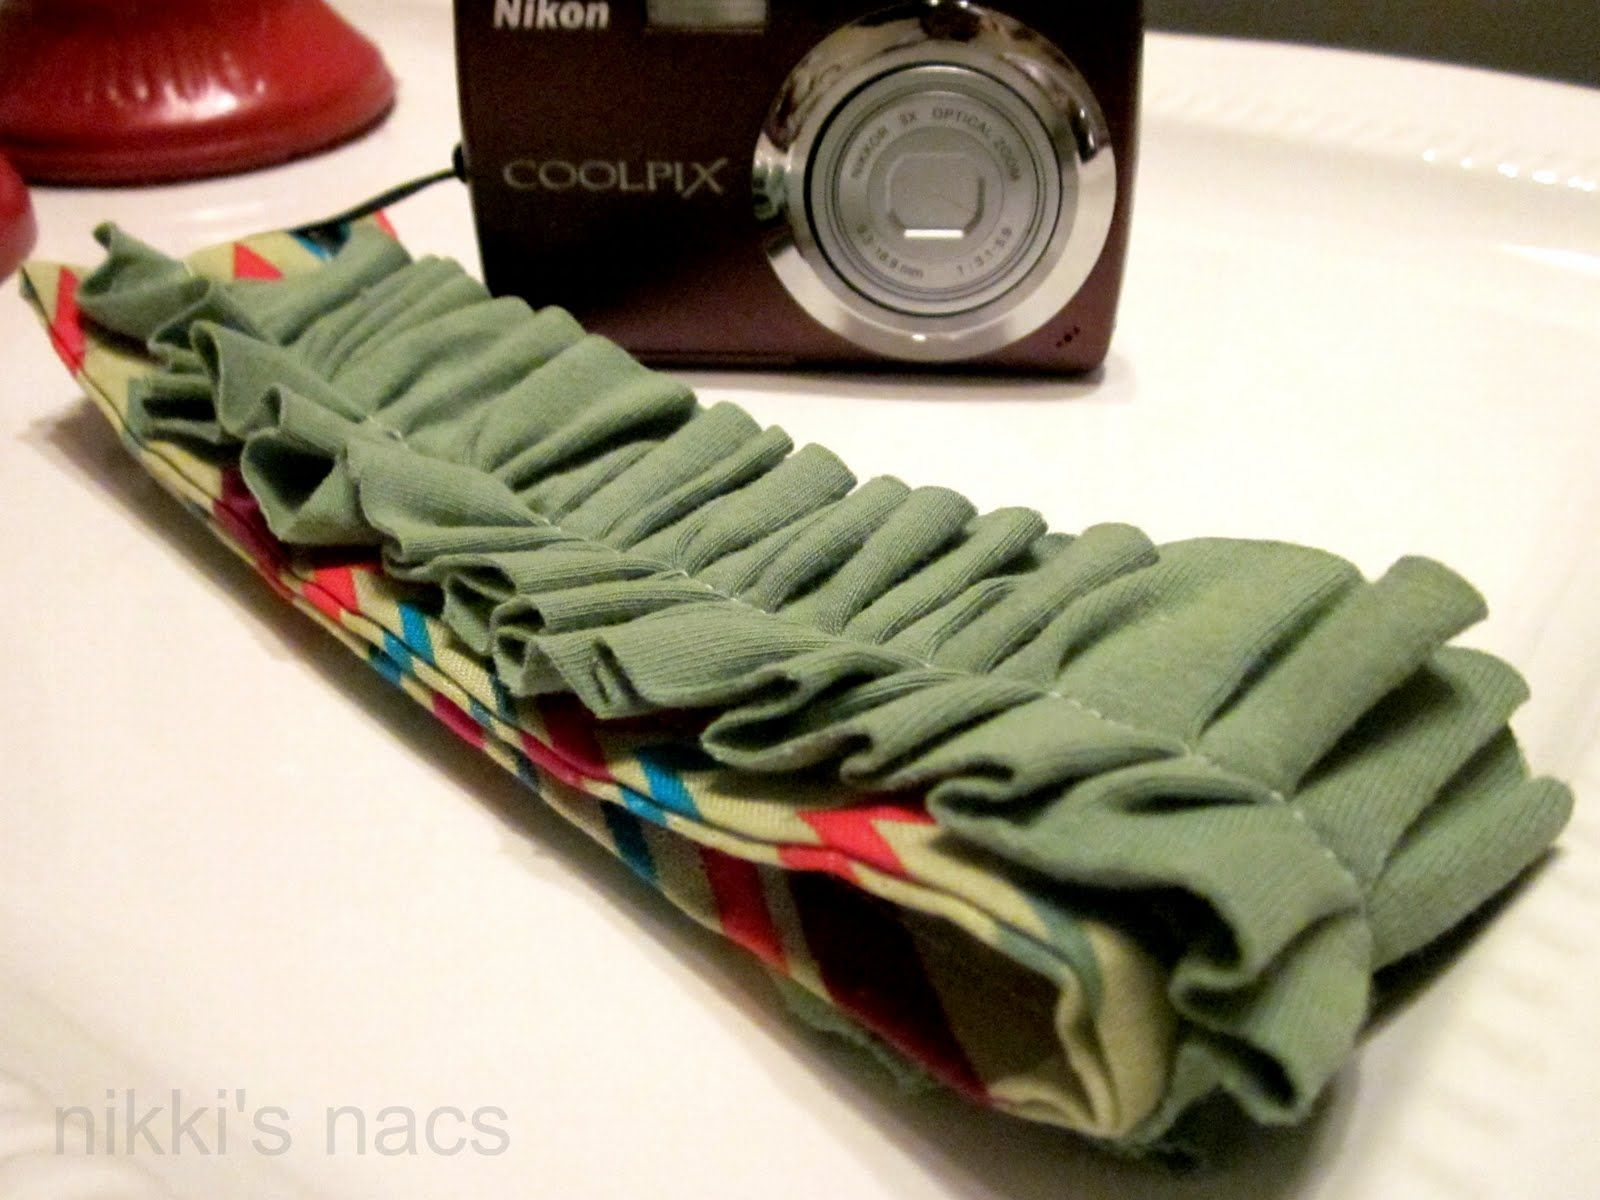 Nikkis' Nacs: point and shoot ruffled wrist strap {tutorial}